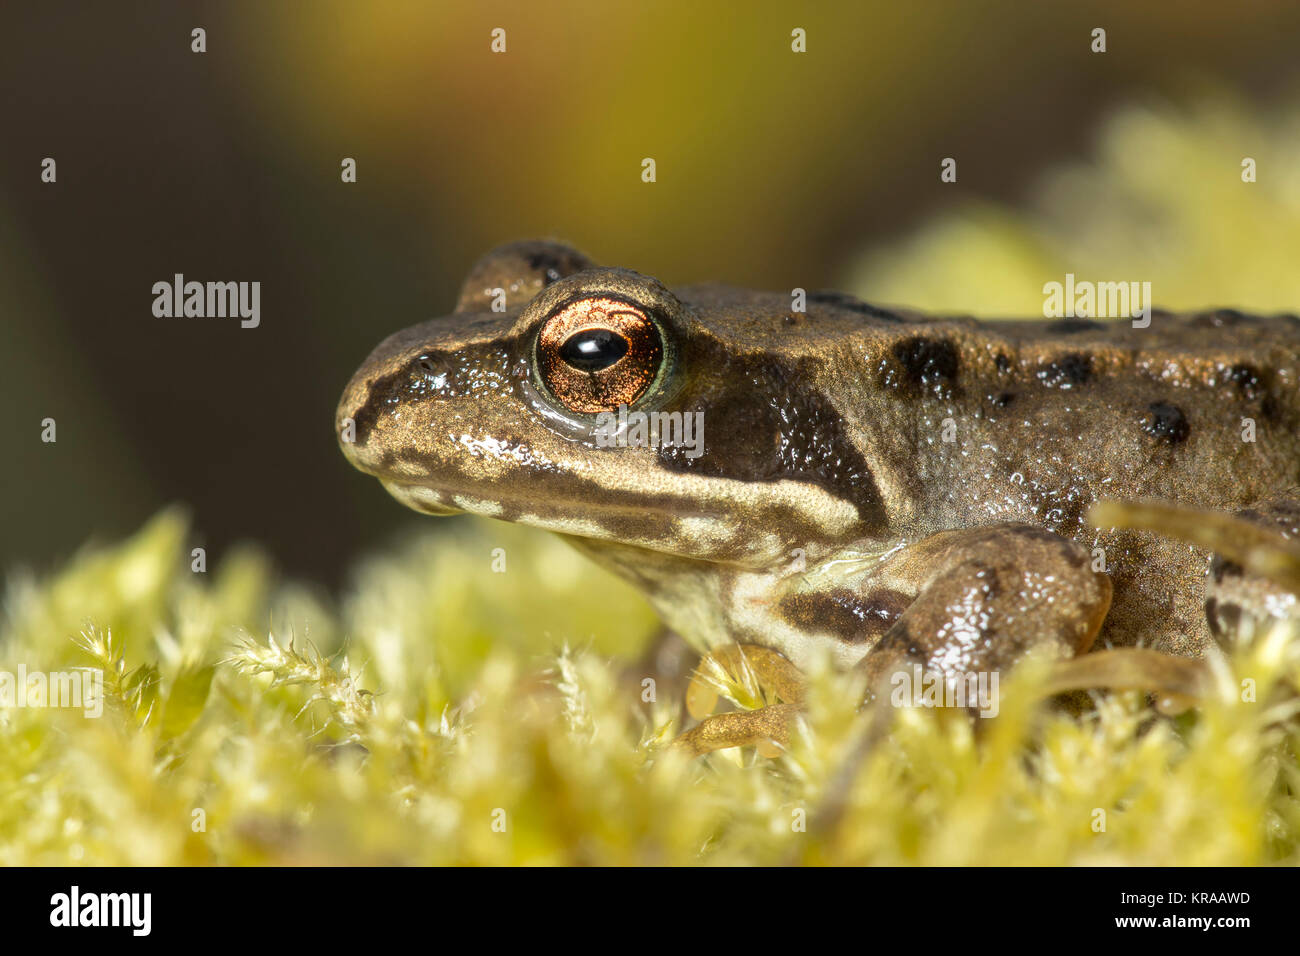 Common Frog (Rana temporaria) resting on a clump of moss on a tree stump. Thurles, Tipperary, Ireland. - Stock Image